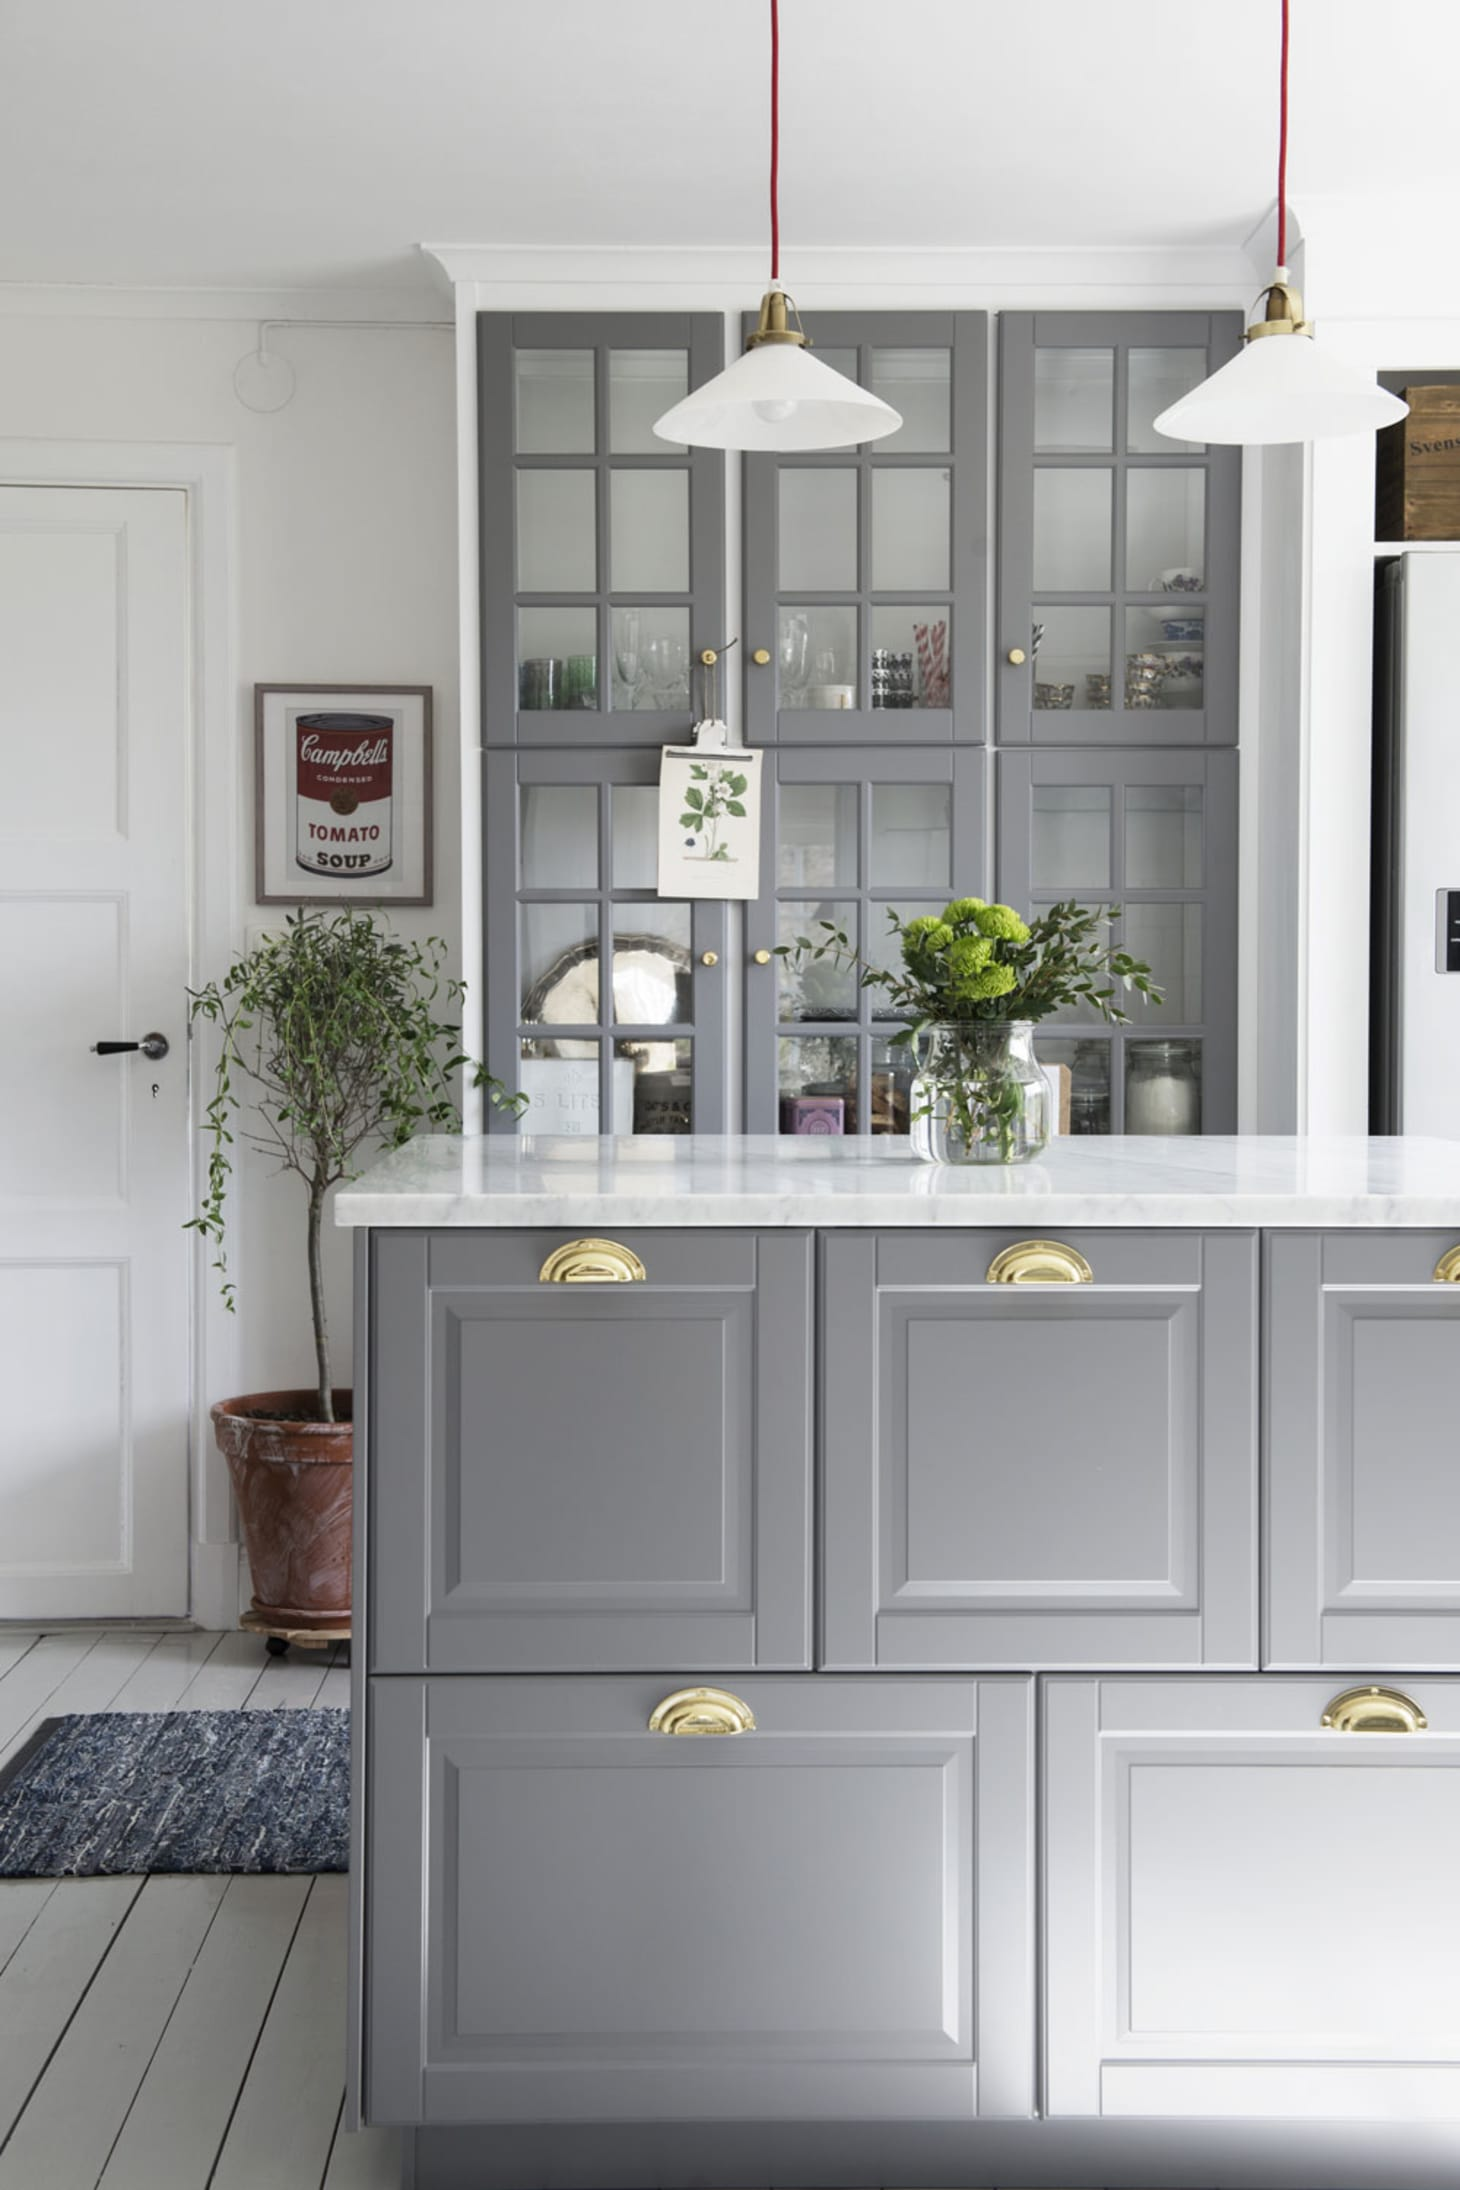 Ikea Cabinet Hacks That Boost Your Kitchen Style Apartment